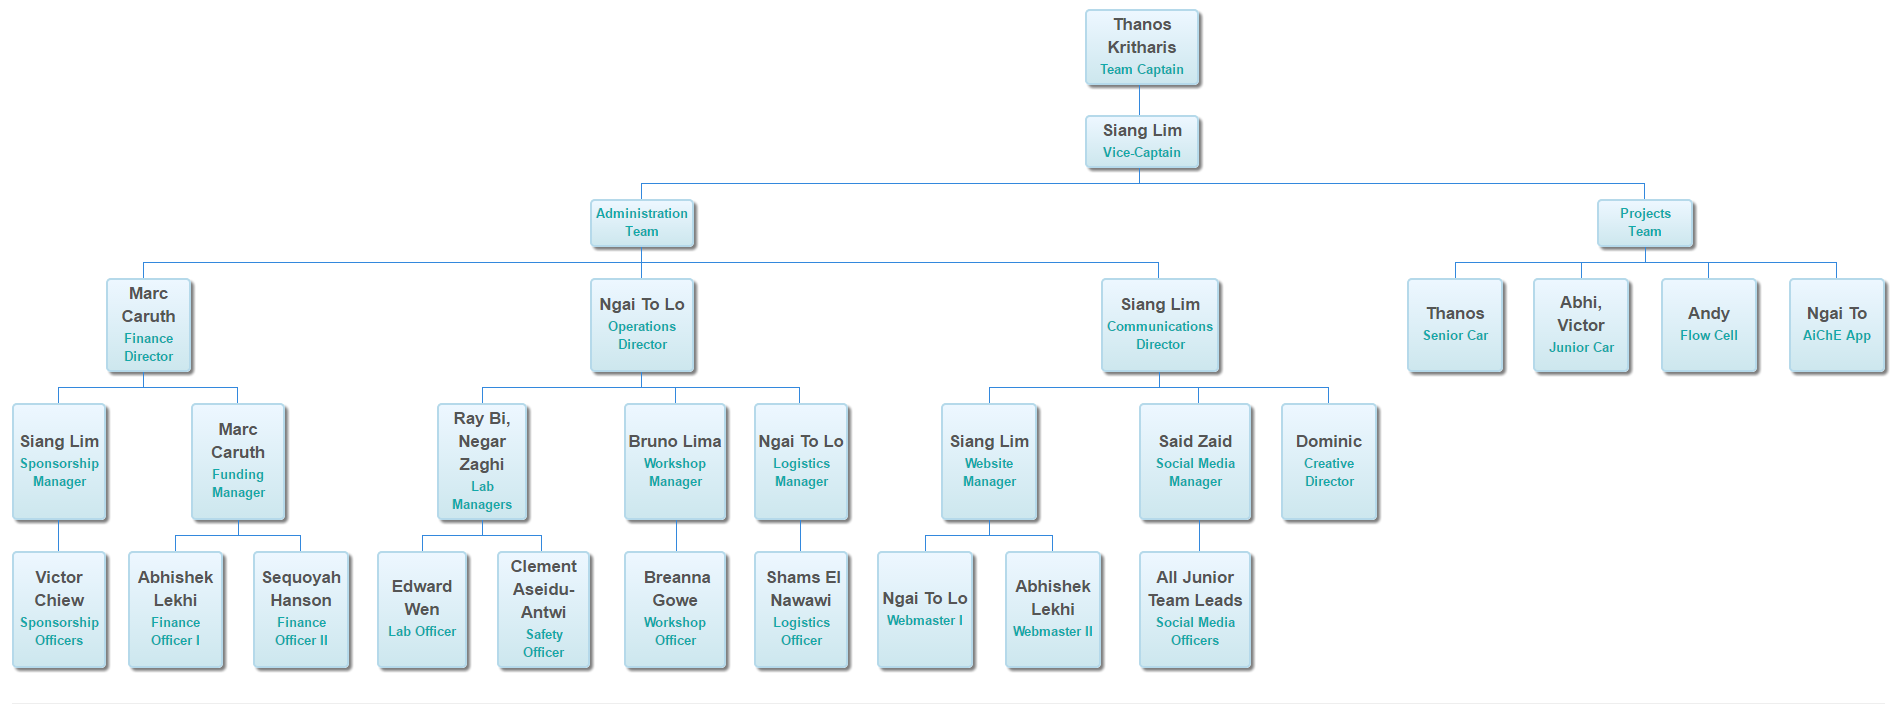 org chart template google docs - how to create dynamic org charts with google sheets and